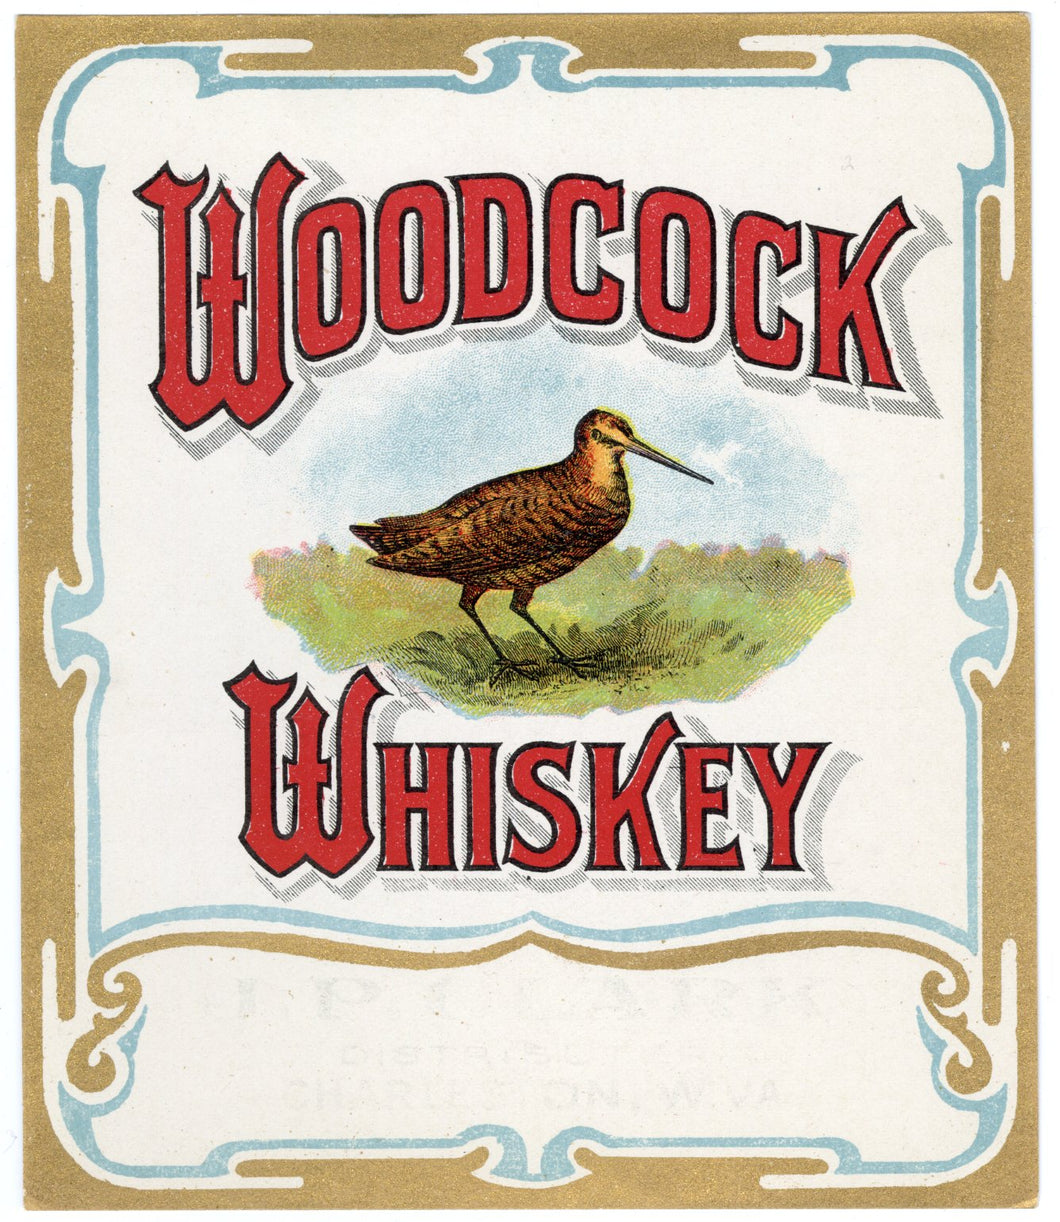 Old Vintage, WOODCOCK WHISKEY Label, Alcohol